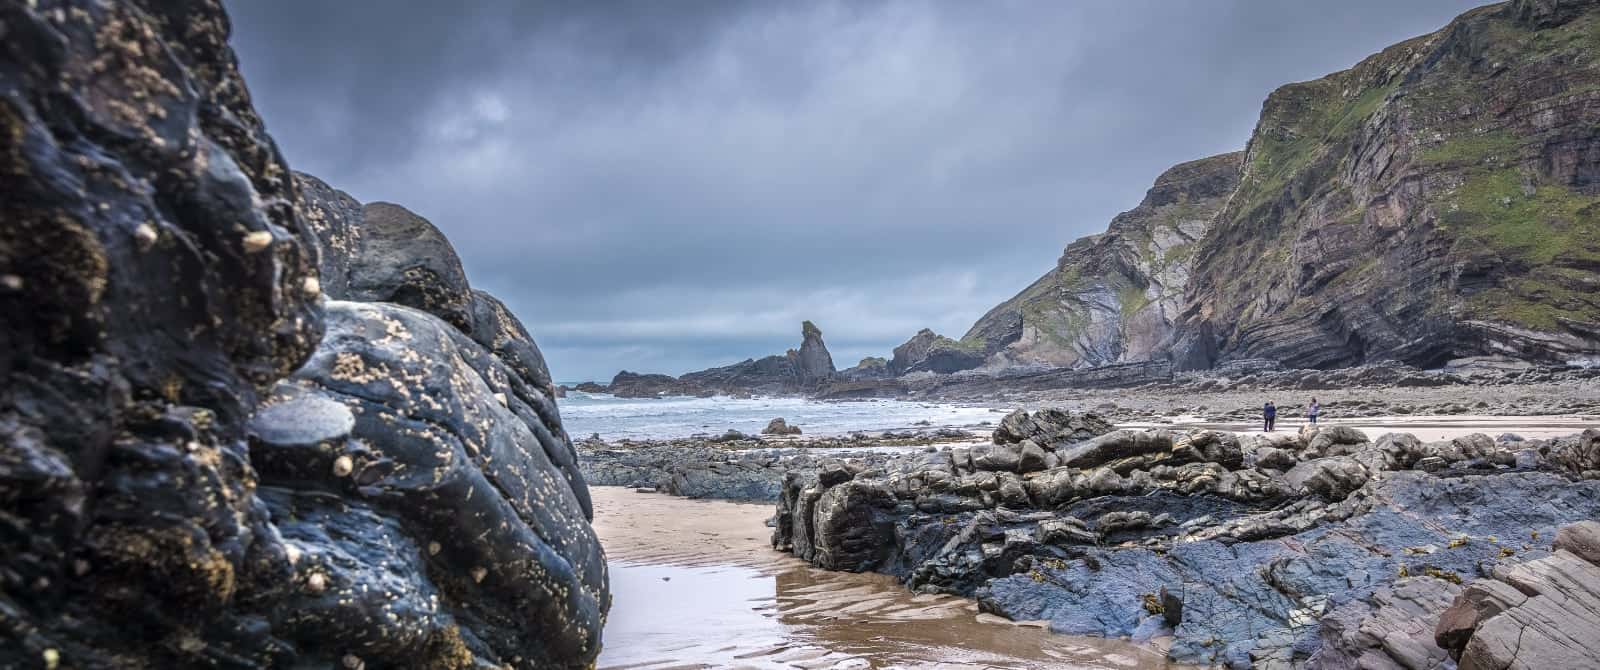 Panoramic view of the beach at Hartland Quay. A view of Bear Rock which is pointed. A group of people are standing on the beach in the background just below the cliffs. The image is mainly blue in tone and atmospheric.